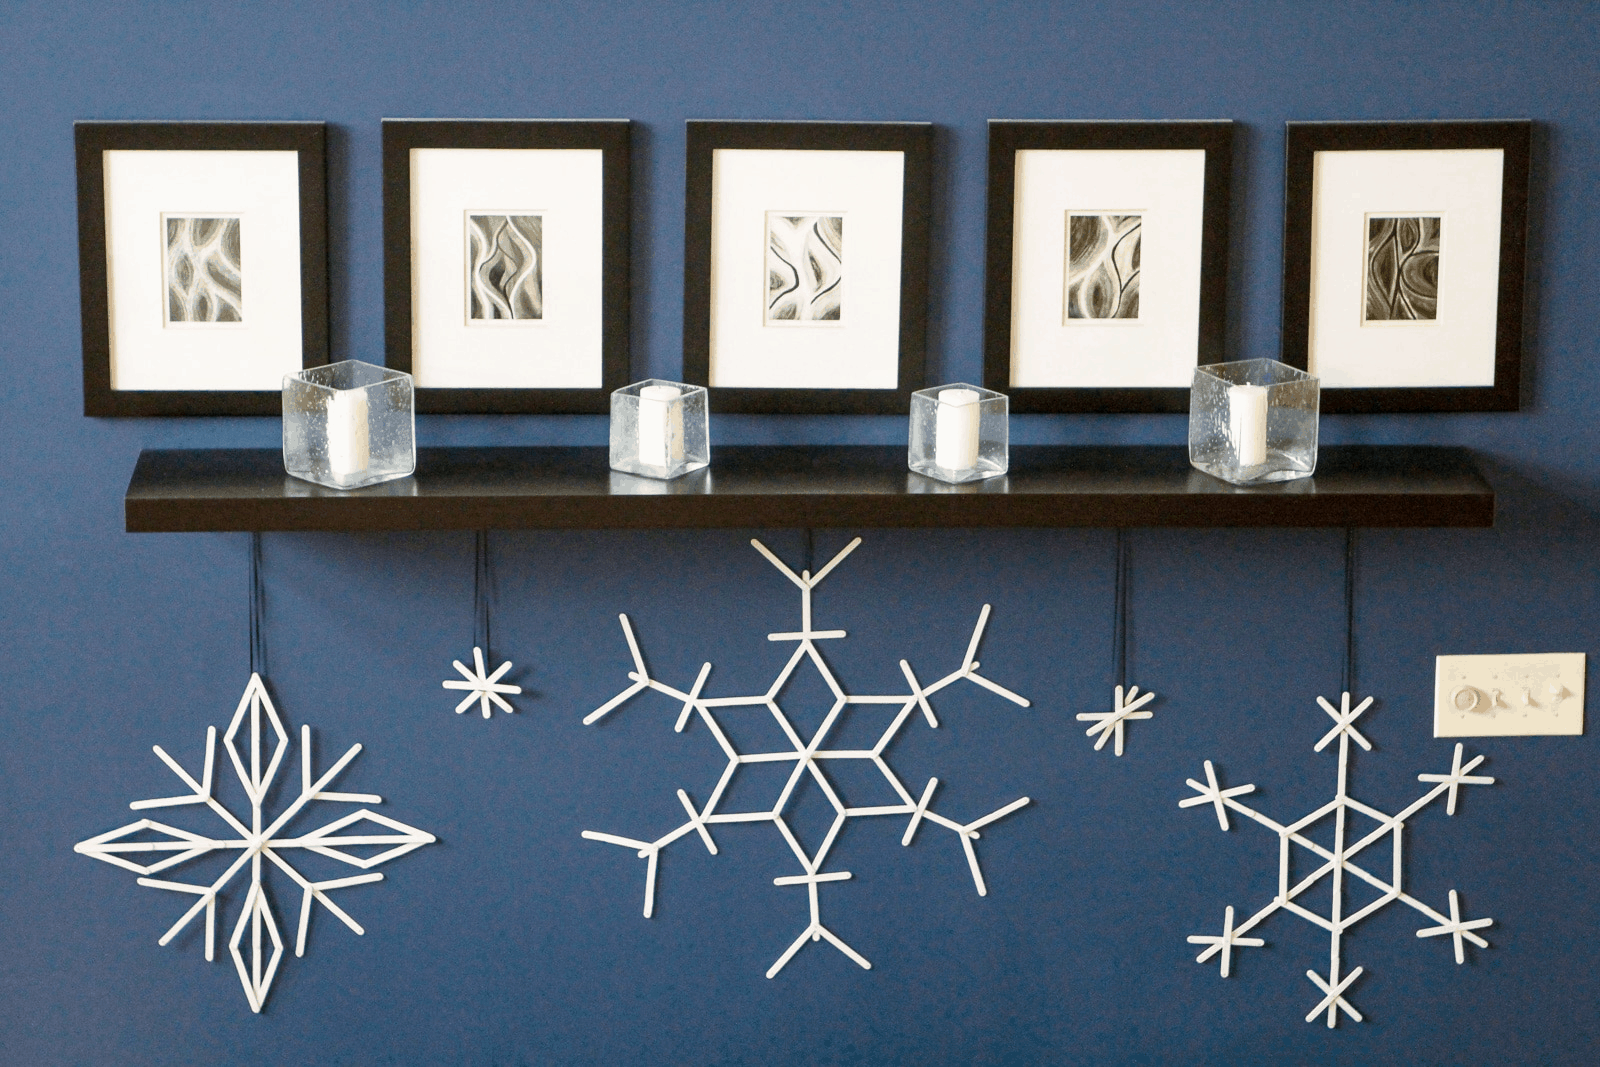 Hanging popsicle stick snowflakes